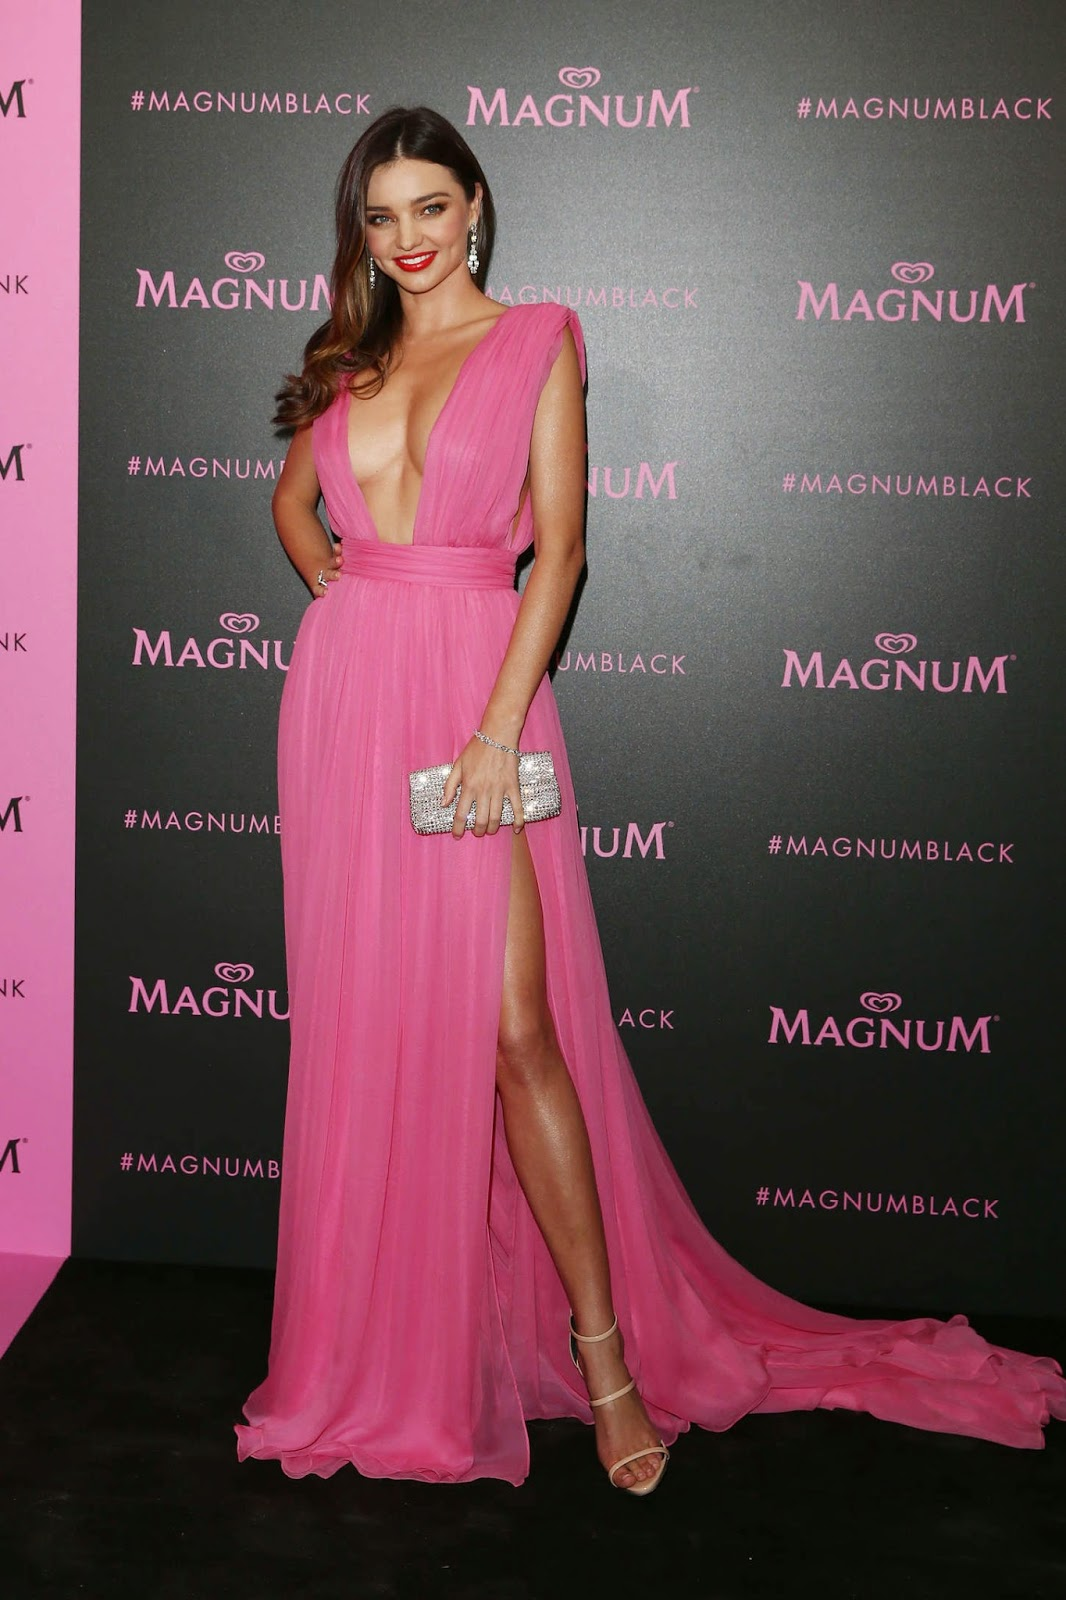 Miranda Kerr stuns in a plunging pink dress at the Magnum Pink and Black Cannes Party